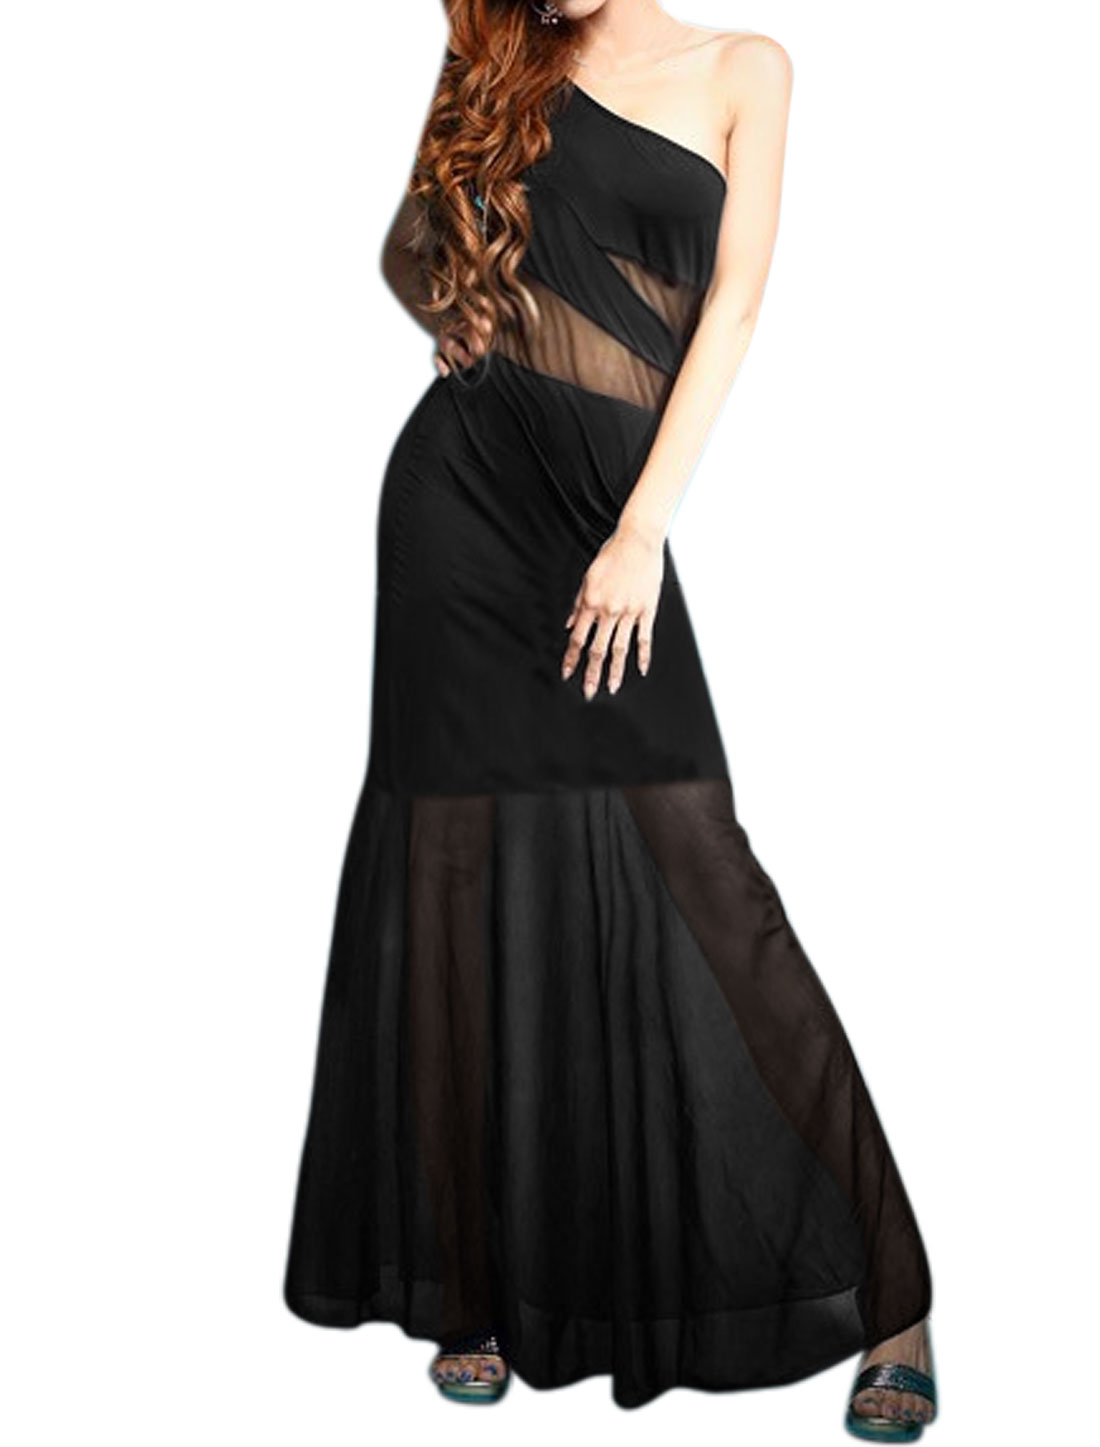 Women Sleeveless One Shoulder Mesh Panel Maxi Dress Black S